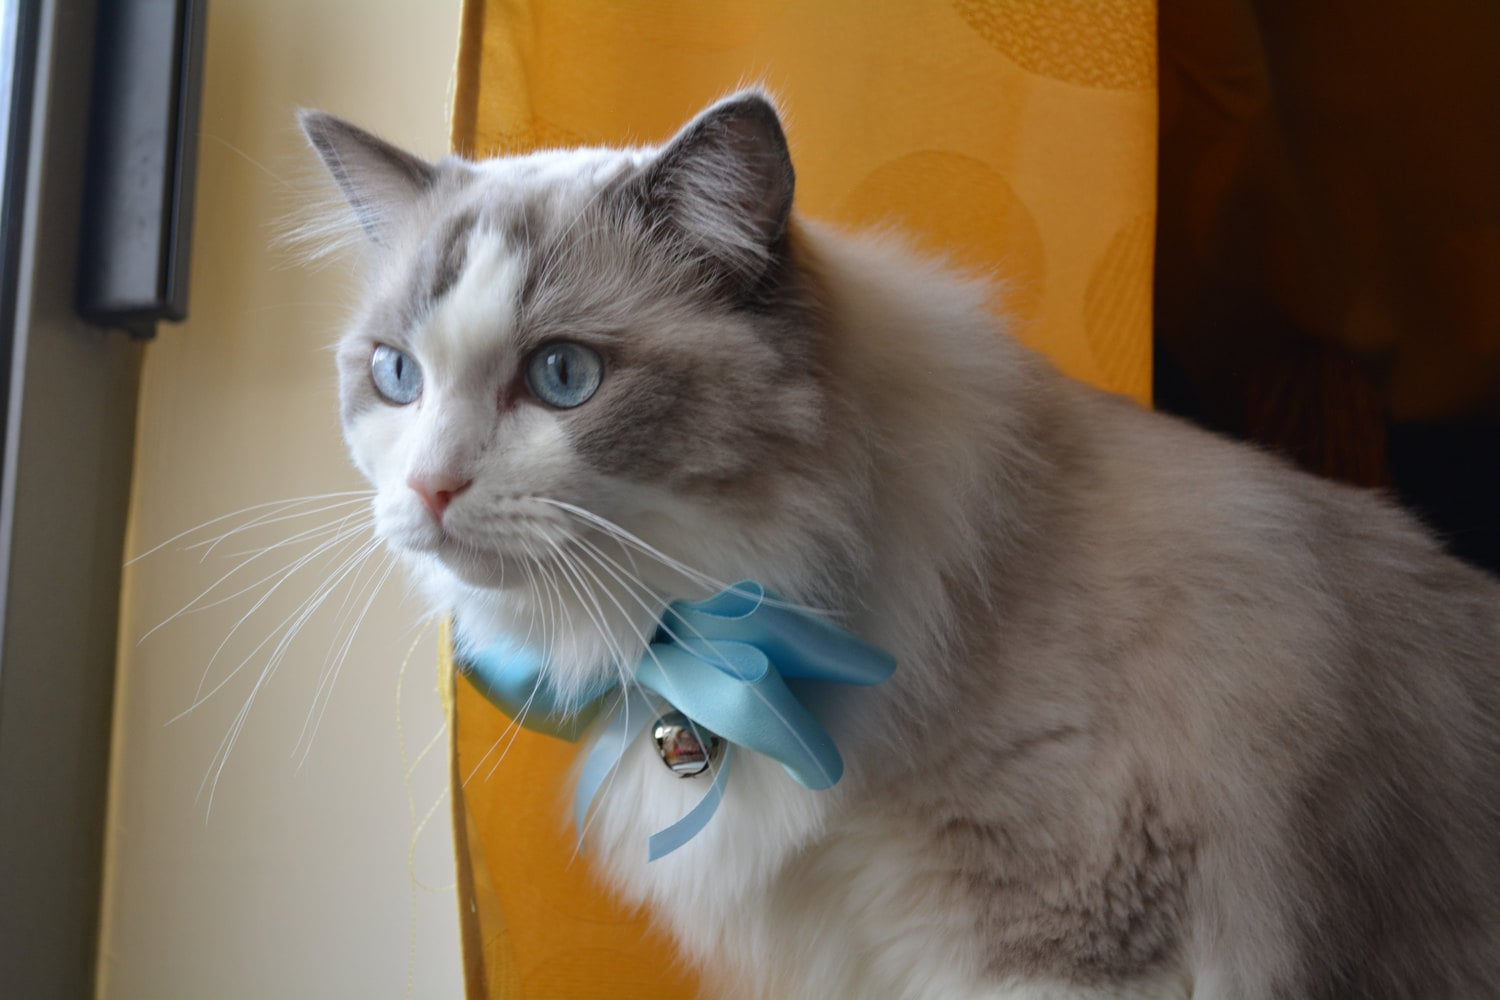 Boris SugarPuffs in a blue bowtie